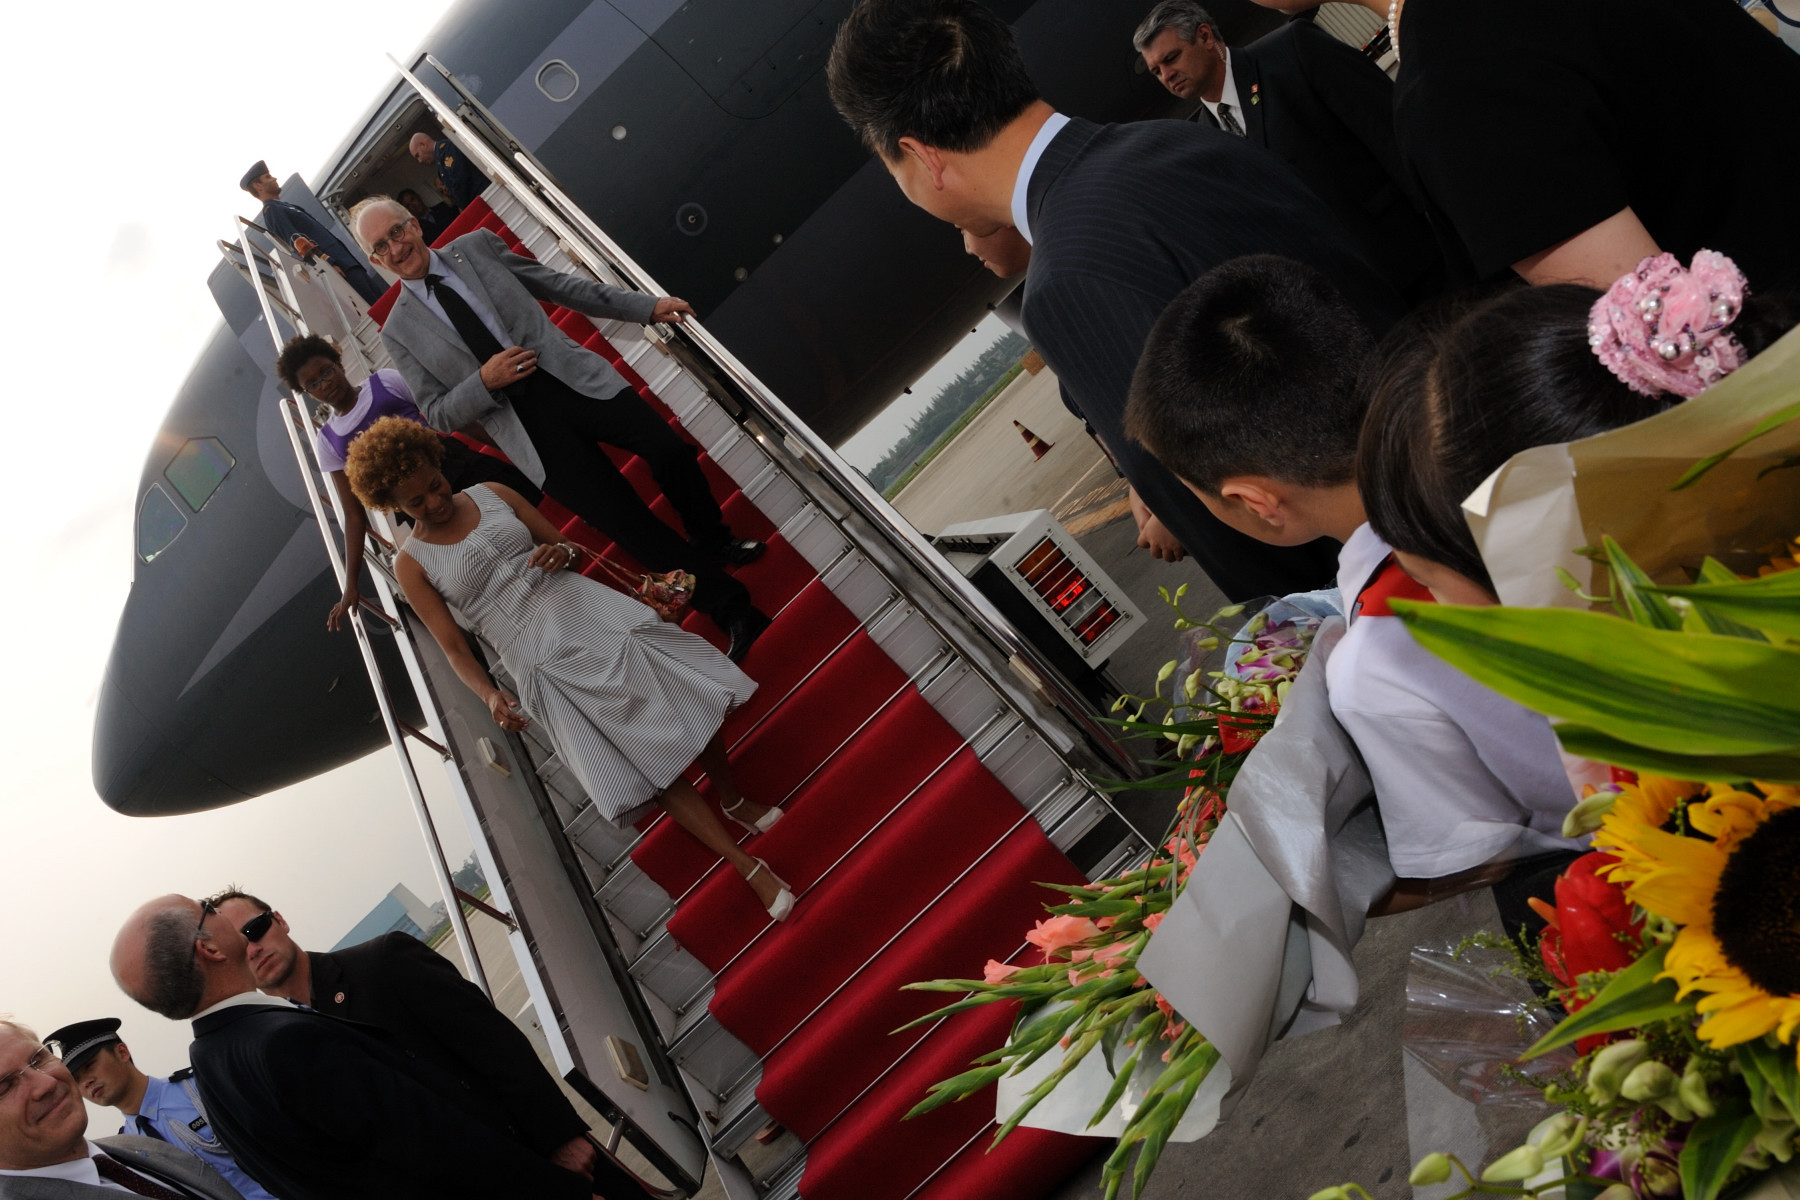 Their Excellencies, Marie-Éden and the Canadian delegation arrived at Chengdu Shuangliu International Airport, in Chengdu.